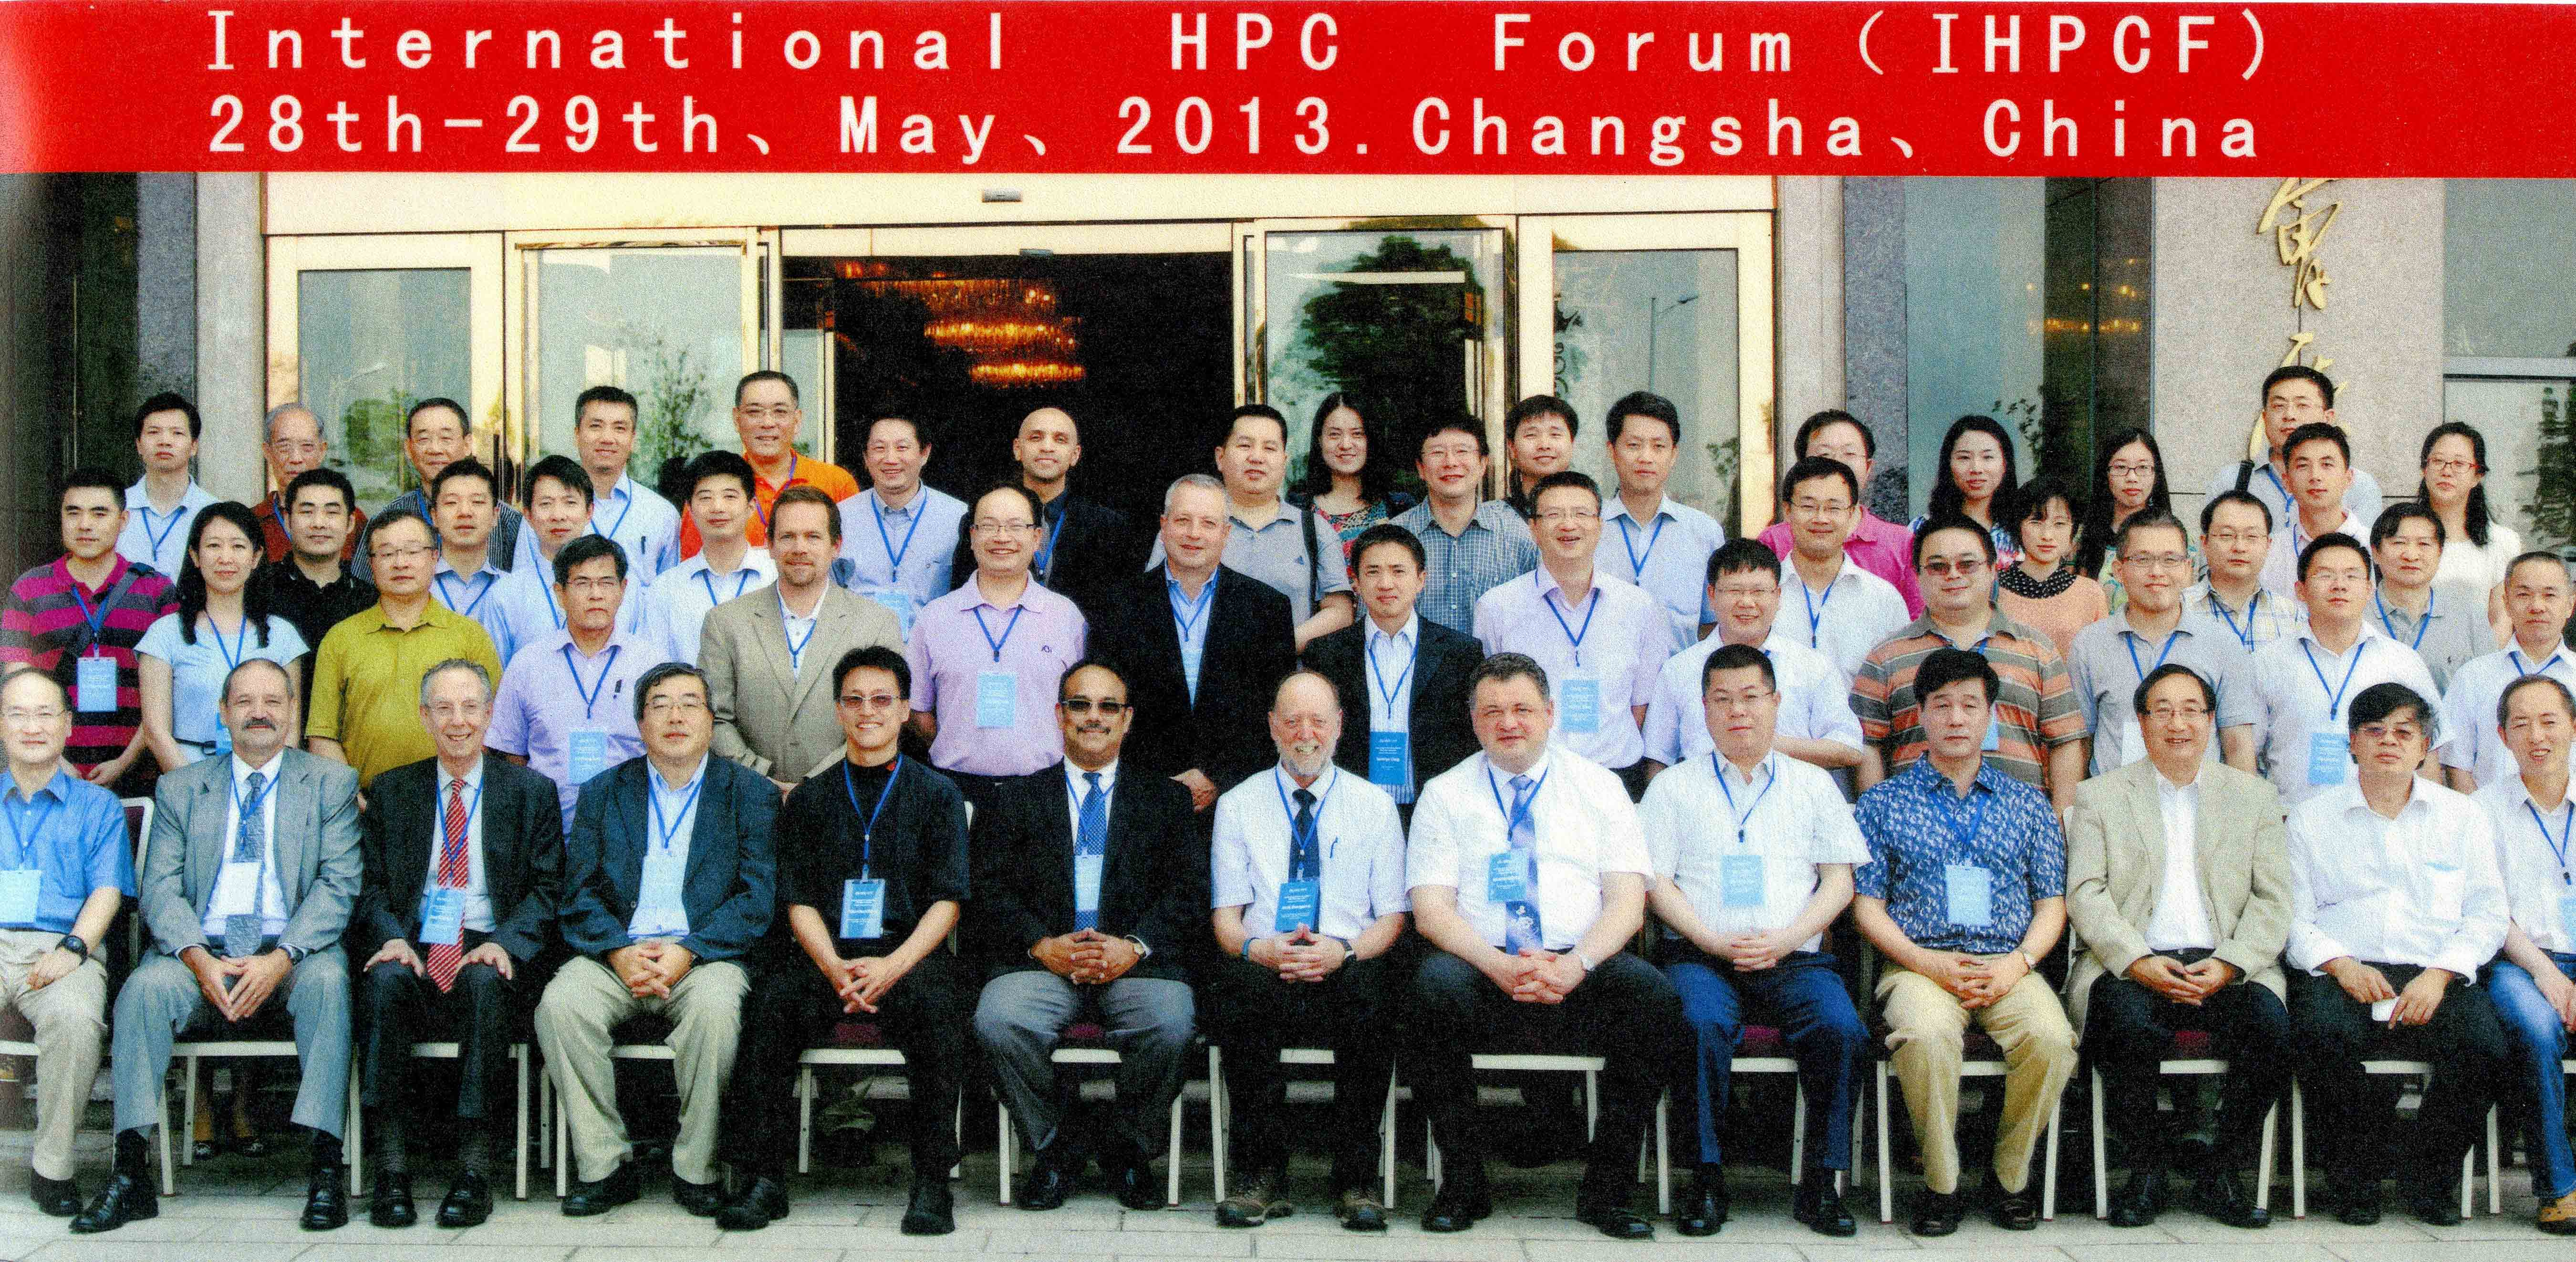 ATIP's Kahaner, with other HPC experts, participates in the International HPC Forum, held May 28-29 in Changsha China.